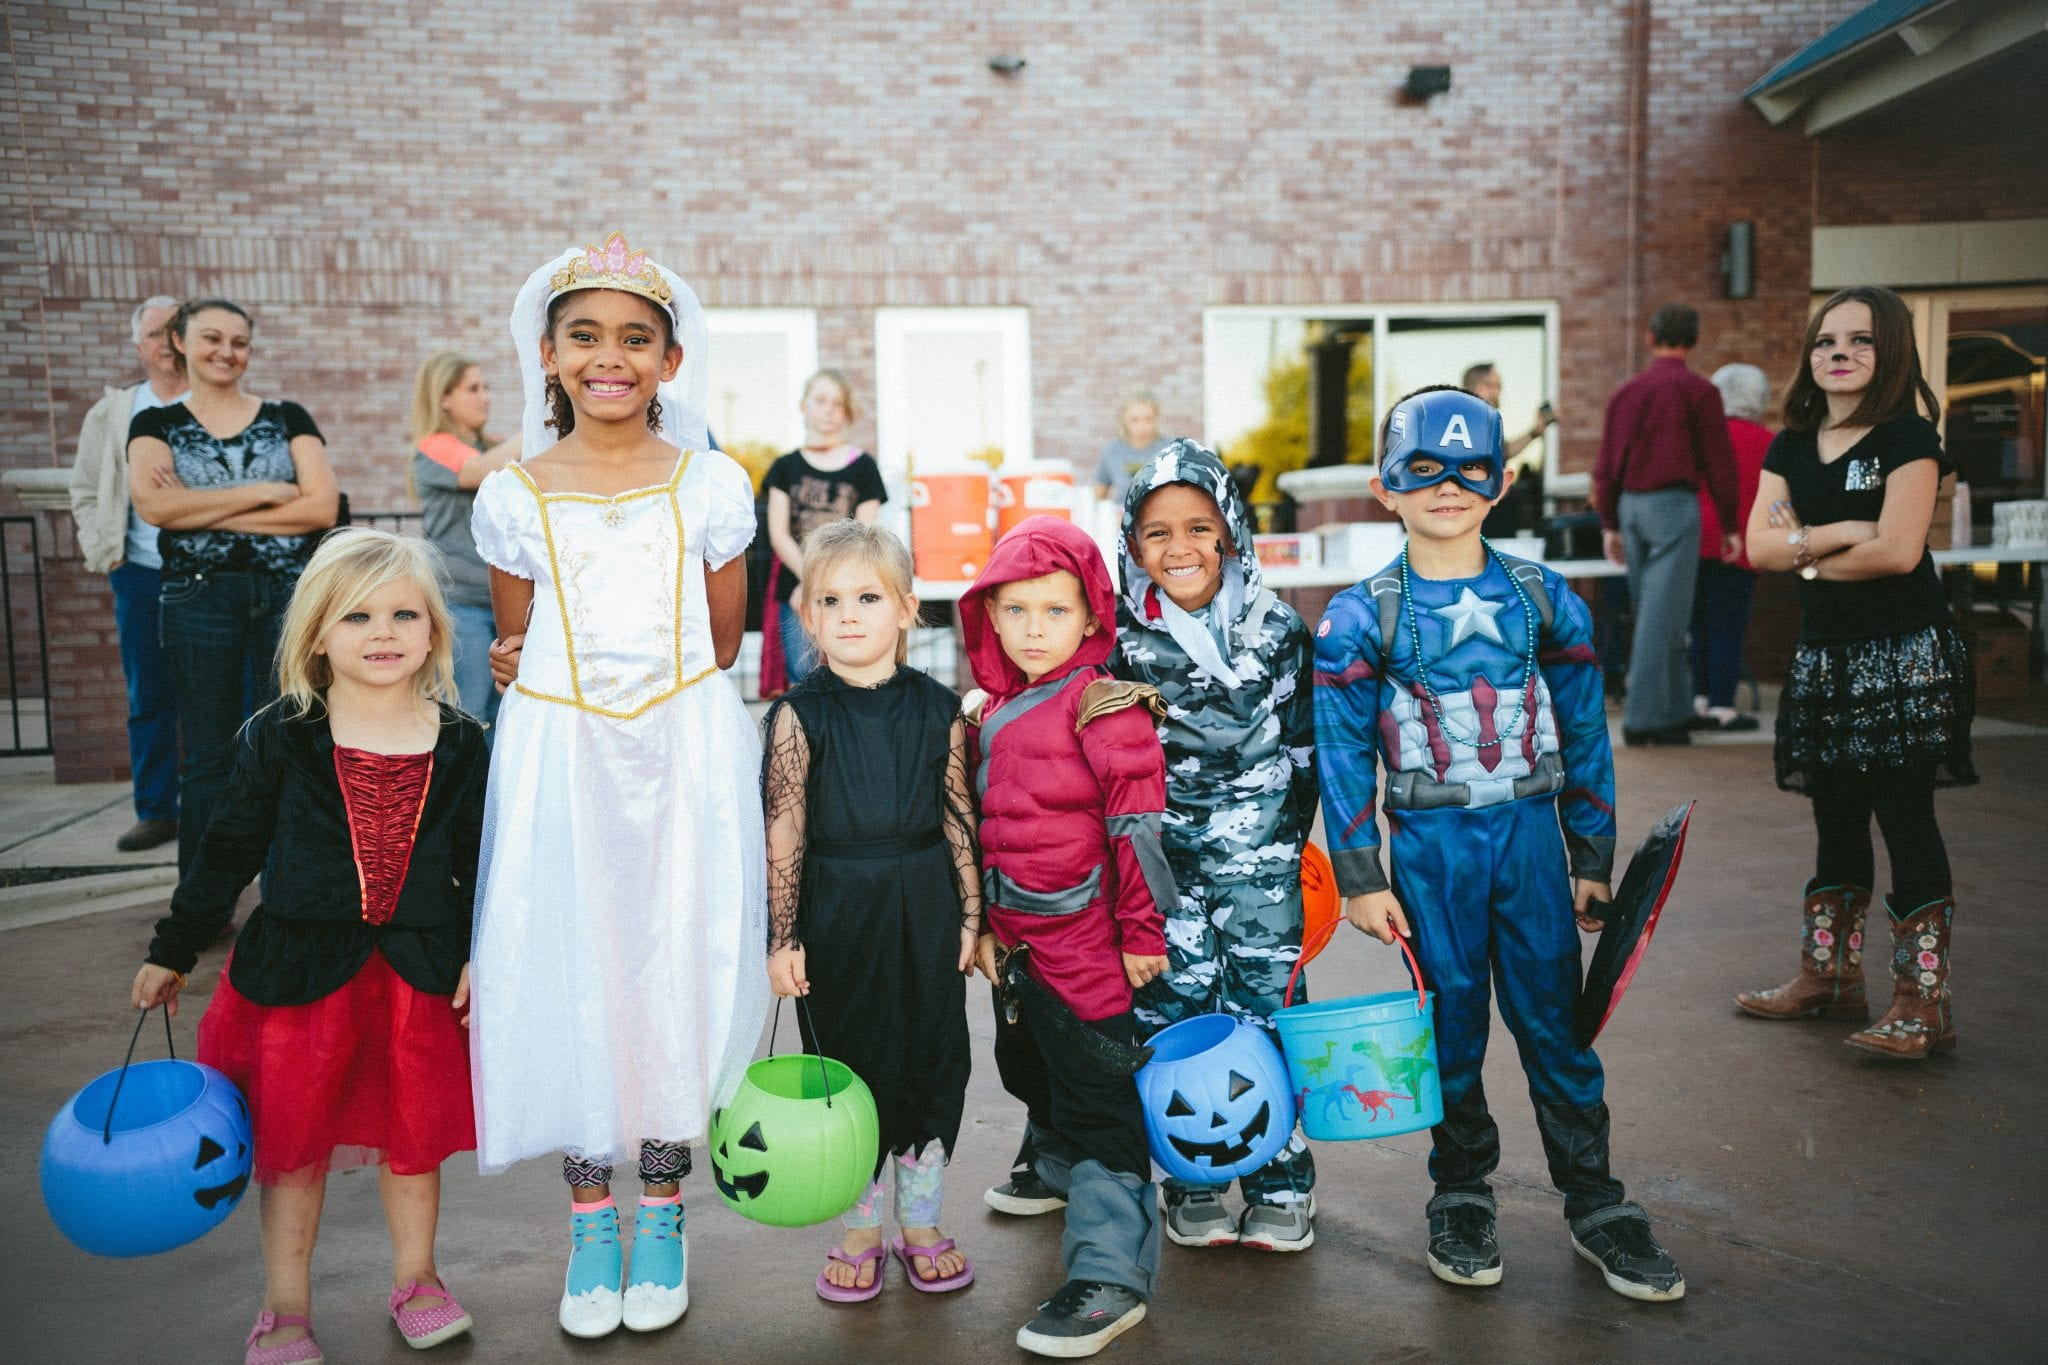 children standing while holding Jack 'o lantern and wearing costume